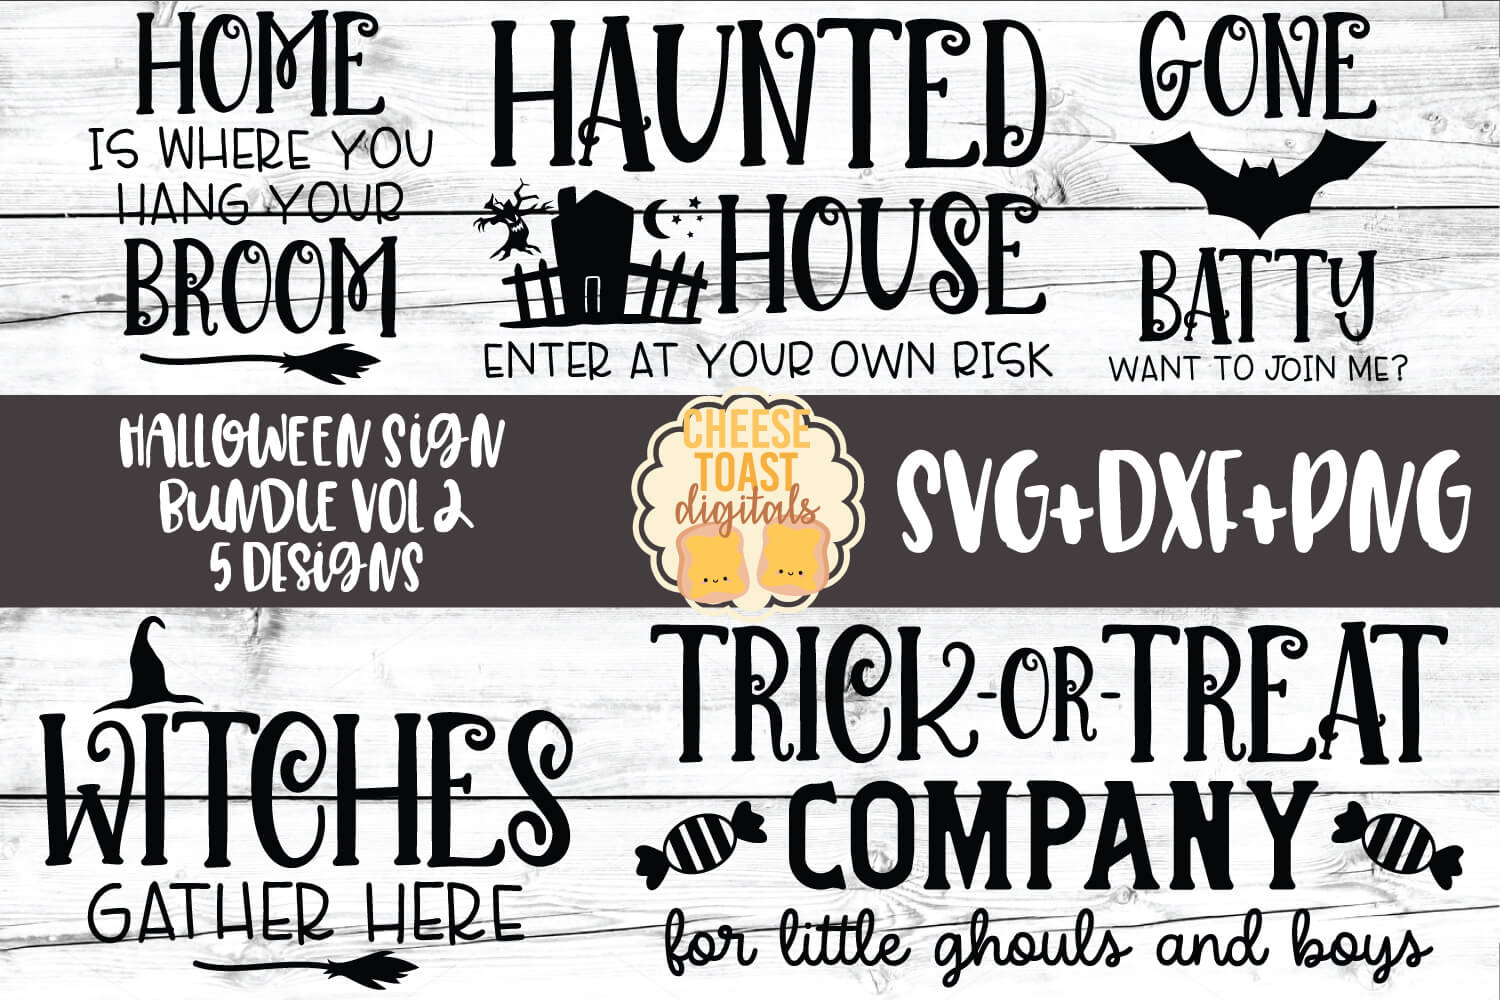 Halloween Sign Bundle Vol 2 - Fall SVG PNG DXF Cut Files example image 1